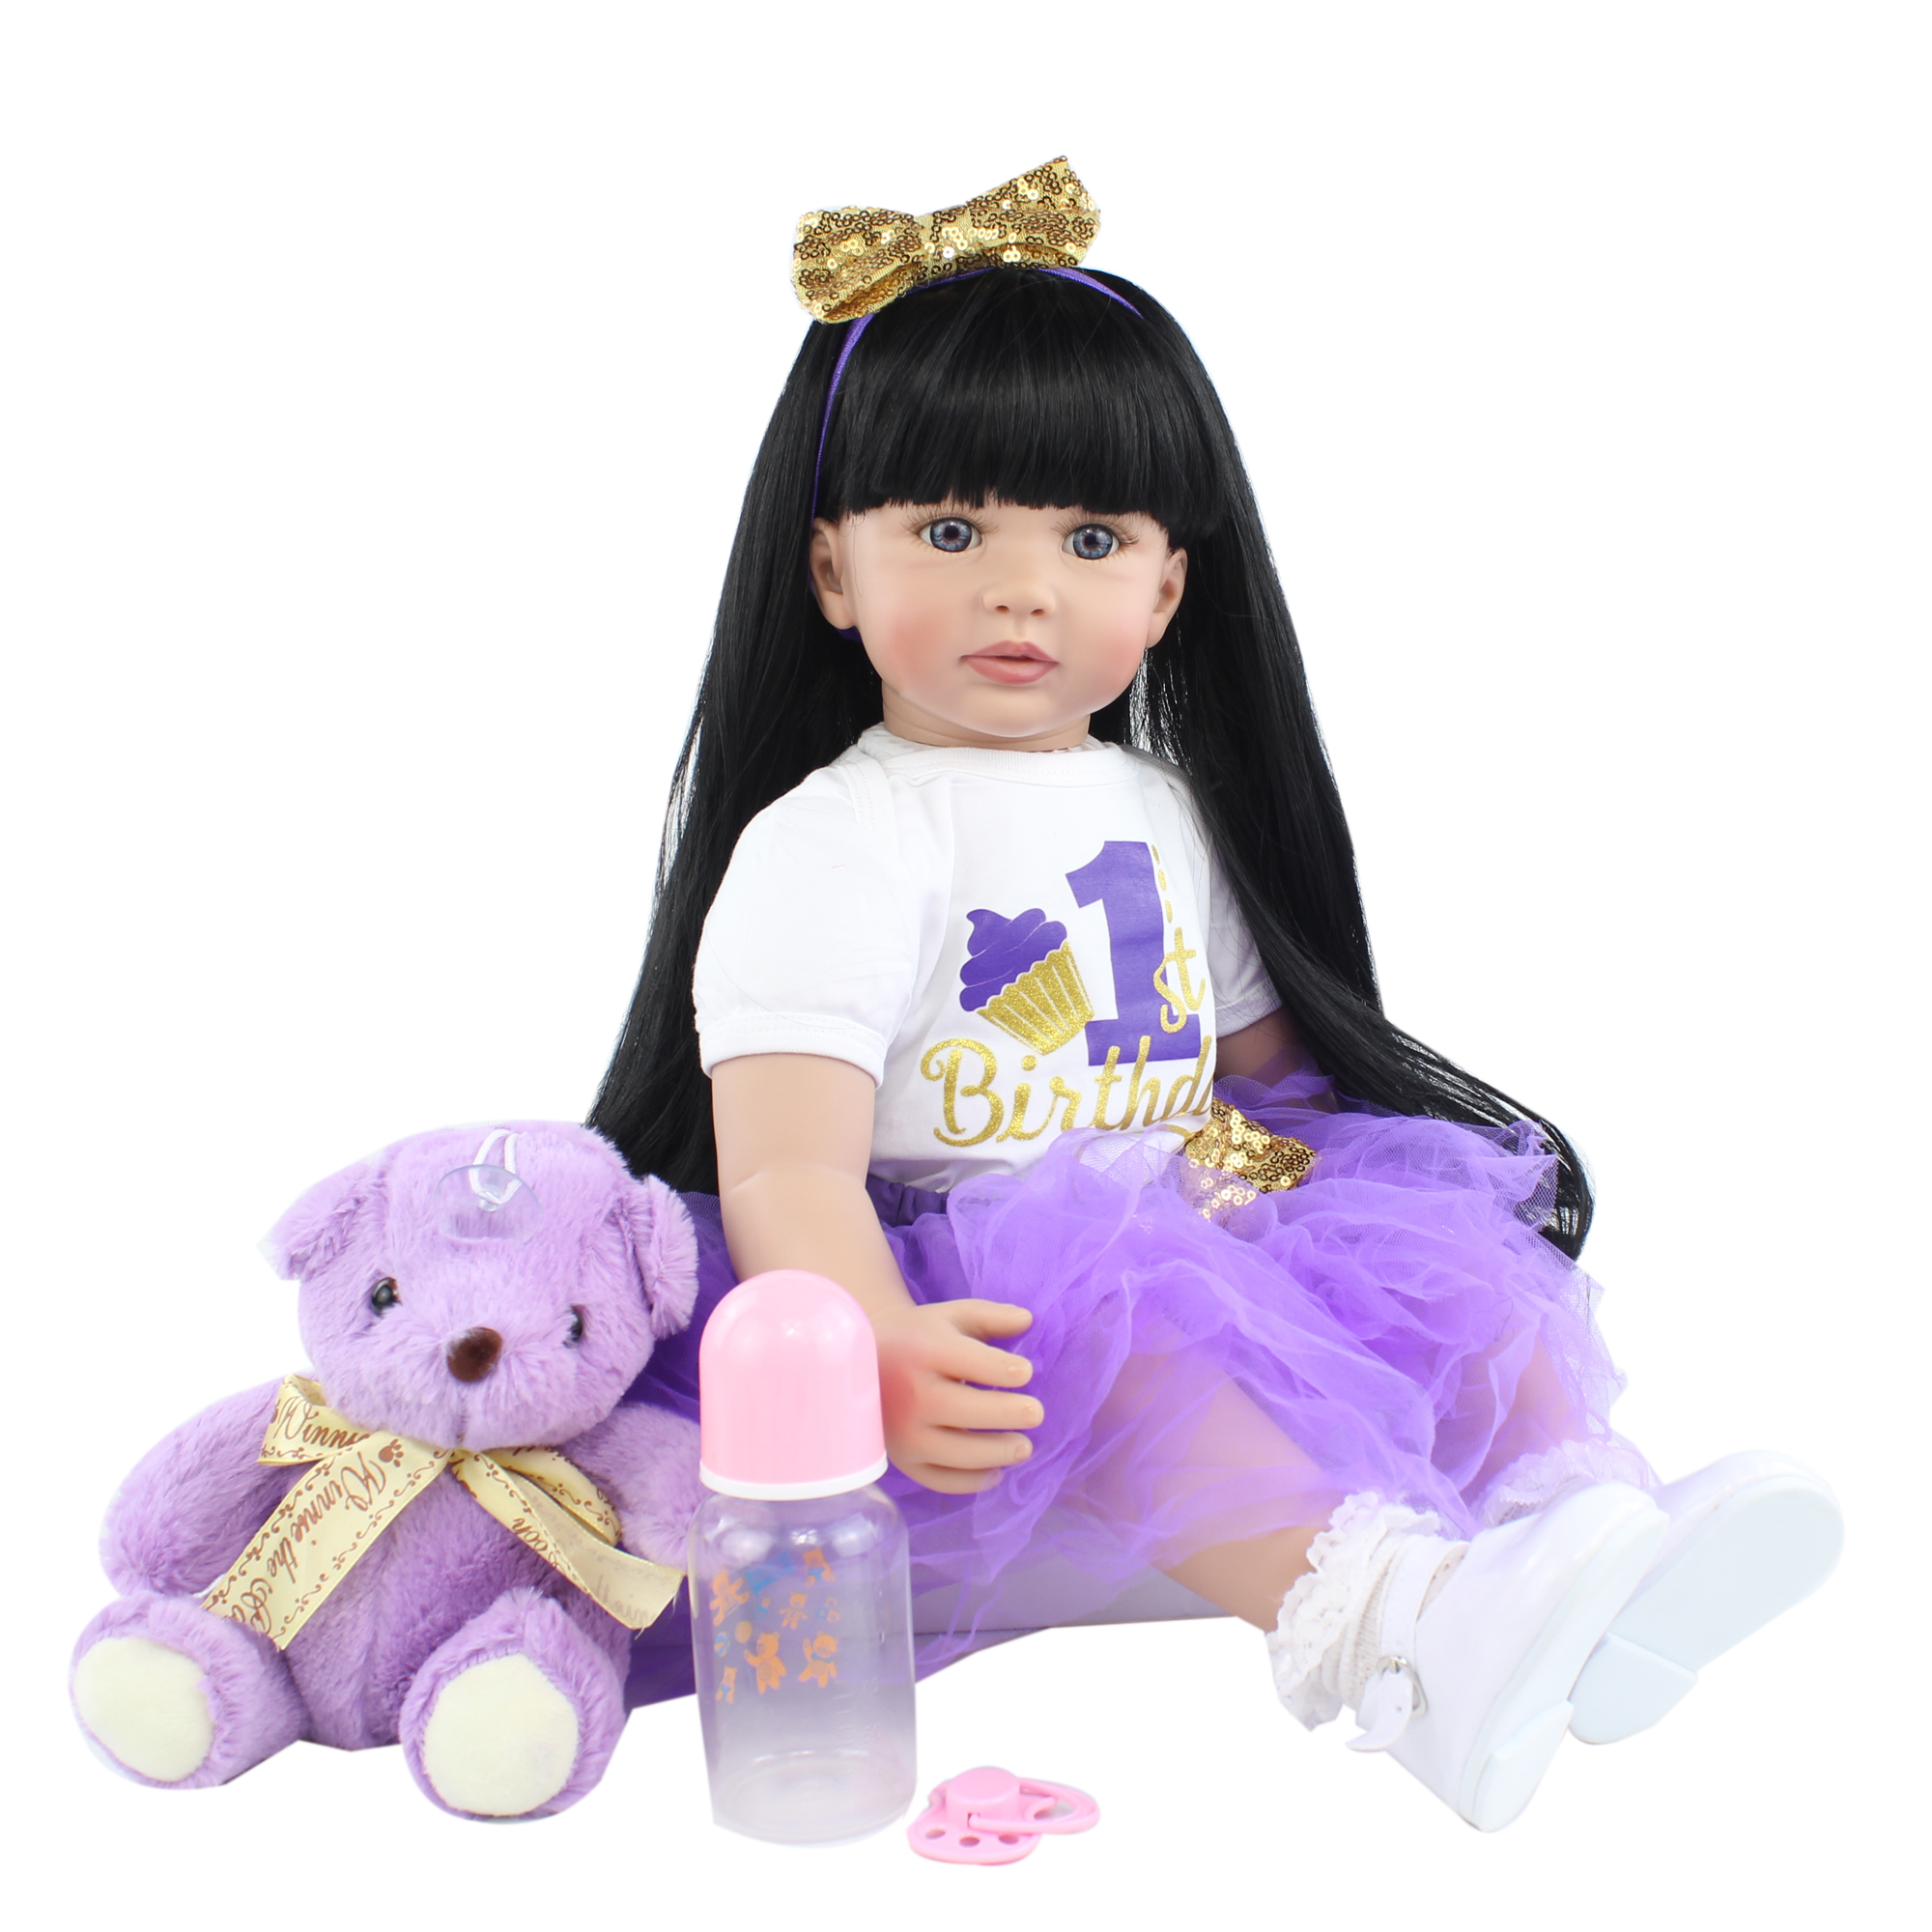 60 CM Soft Silicone Reborn Baby Doll Toys For Girl 24 Inch Black Long Hair Princess Toddler Dress Up Bebe Kids Birthday Gift